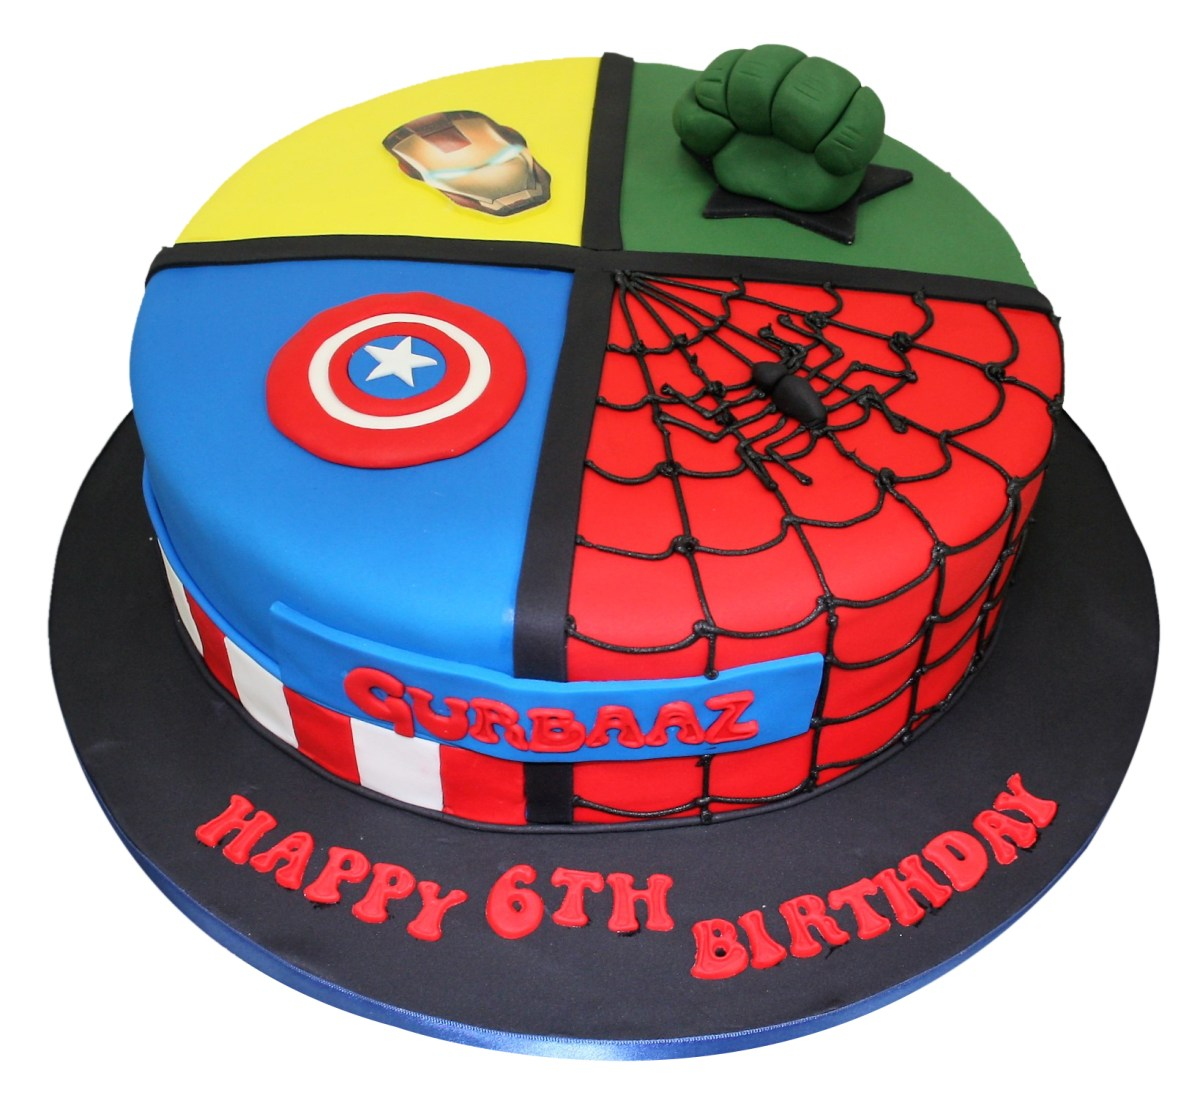 Superb Superhero Birthday Cakes All In One Superheroes Cake Birijus Com Personalised Birthday Cards Cominlily Jamesorg